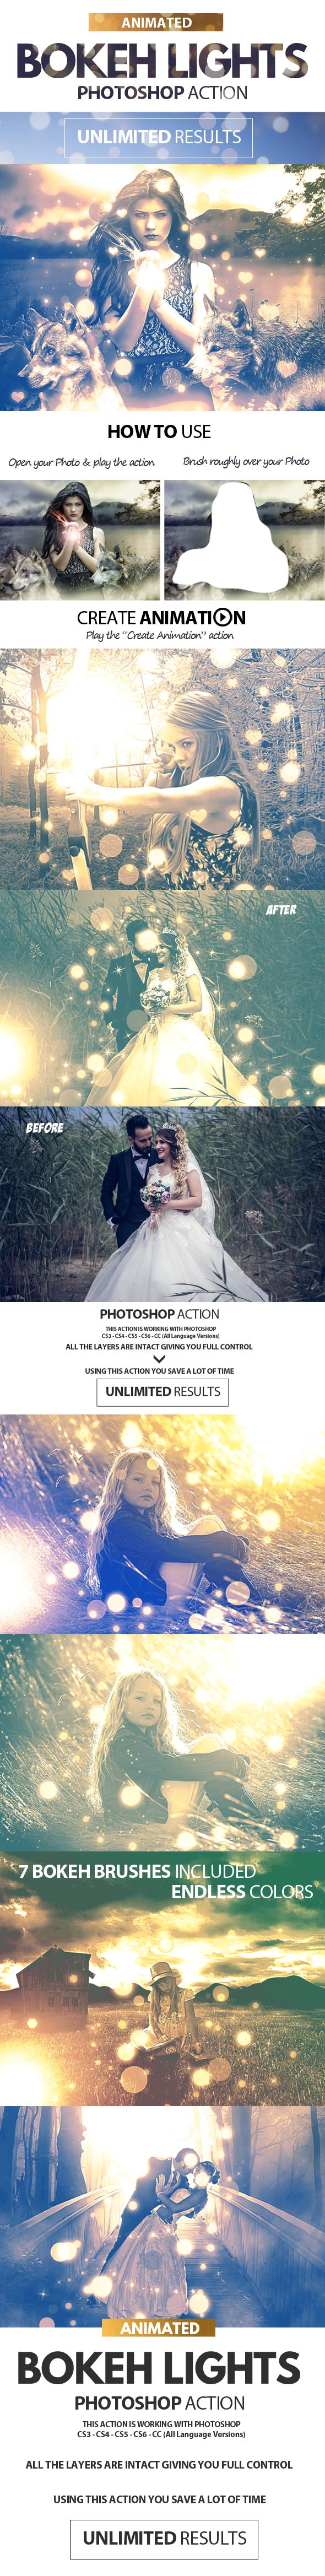 Animated Bokeh Lights Photoshop Action — Photoshop ATN #animated bokeh #bokeh photoshop • Download ➝ https://graphicriver.net/item/animated-bokeh-lights-photoshop-action/19894762?ref=pxcr